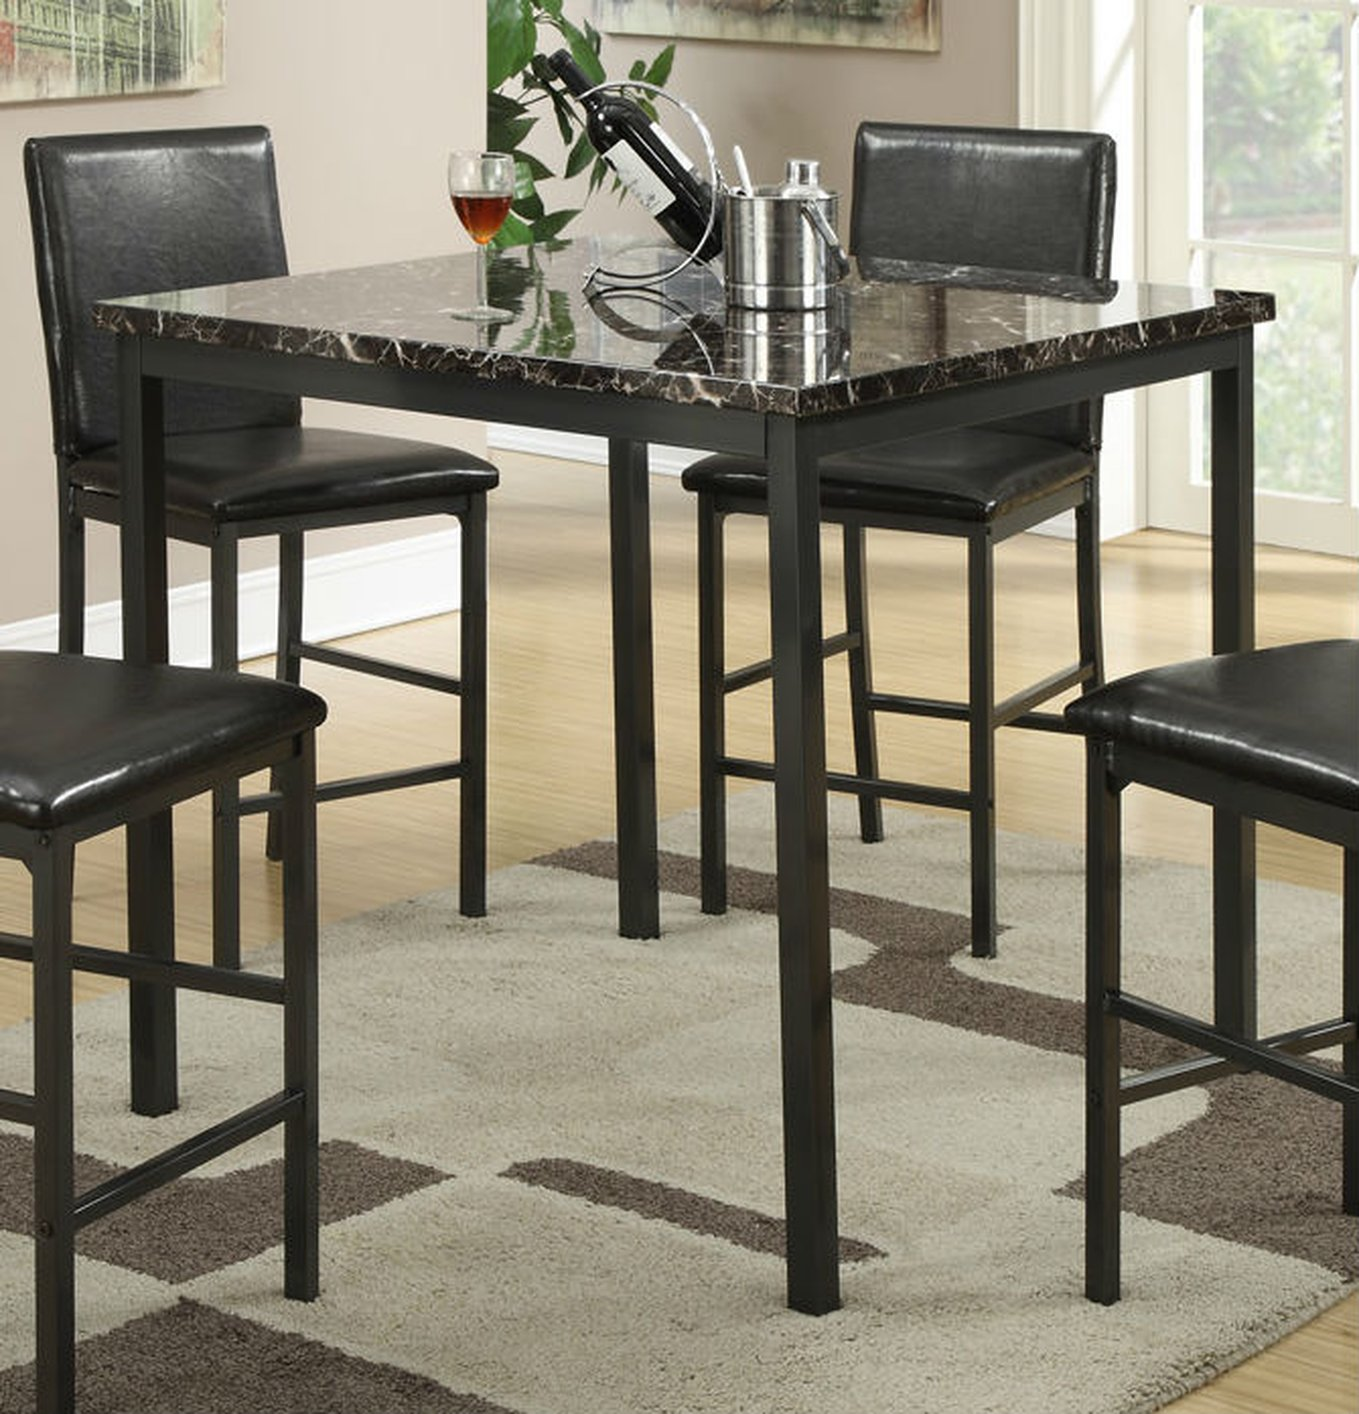 Black Metal Dining Table StealASofa Furniture Outlet Los Angeles CA - Kitchen table los angeles